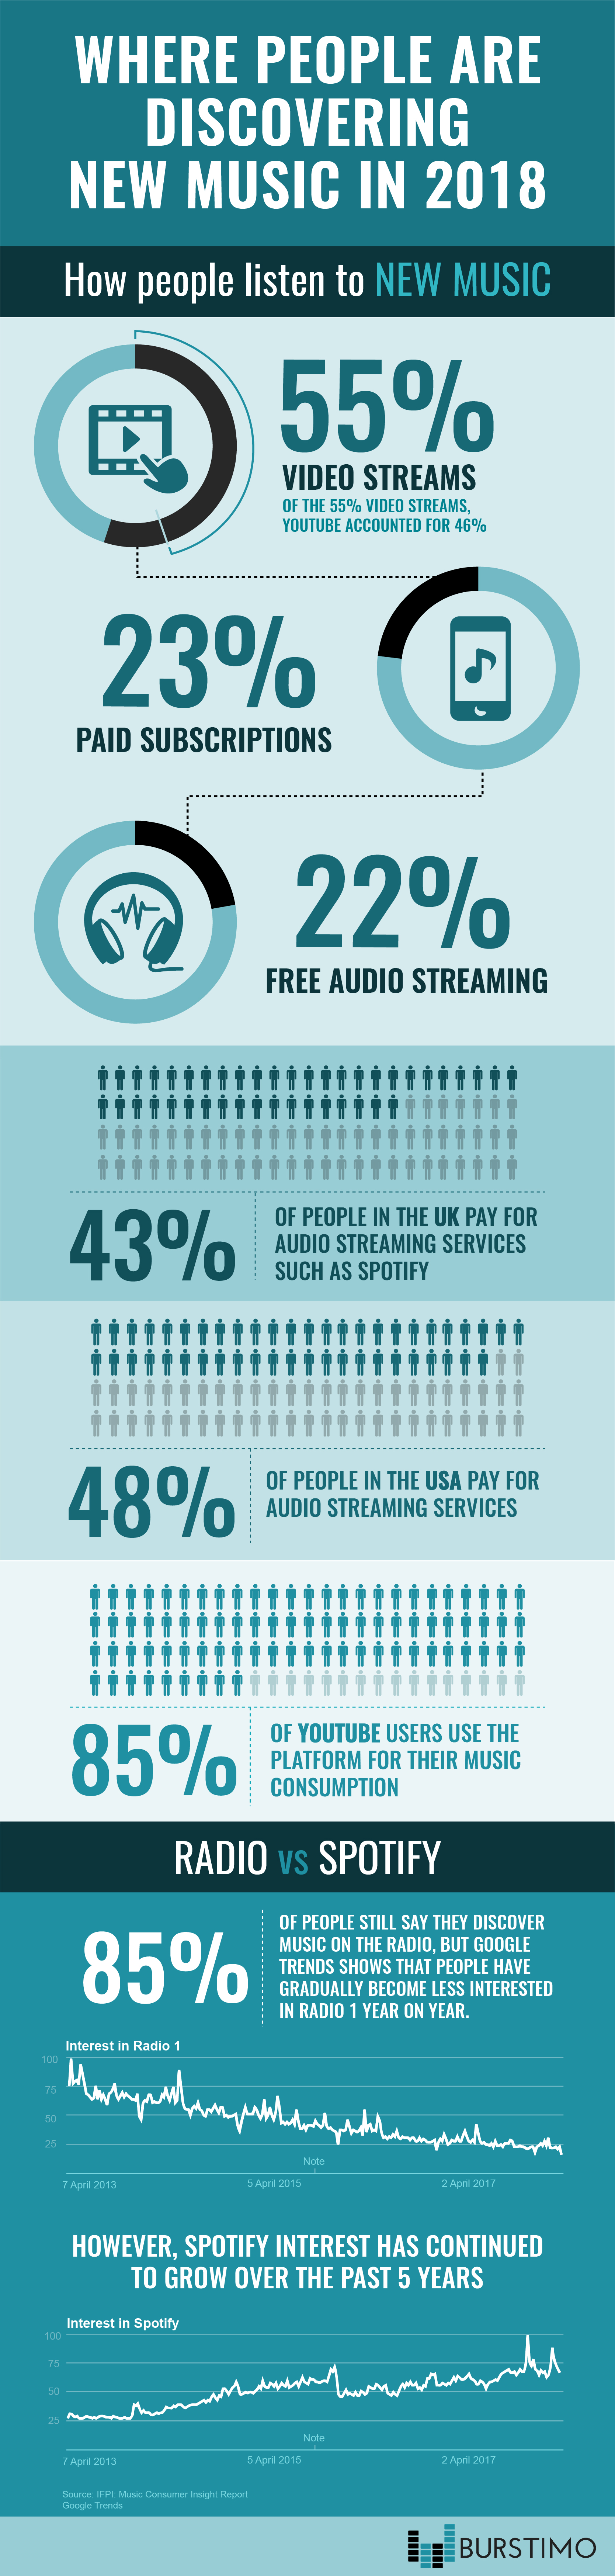 Burstimo music industry graph streaming data downloads radio streams purchases downloads